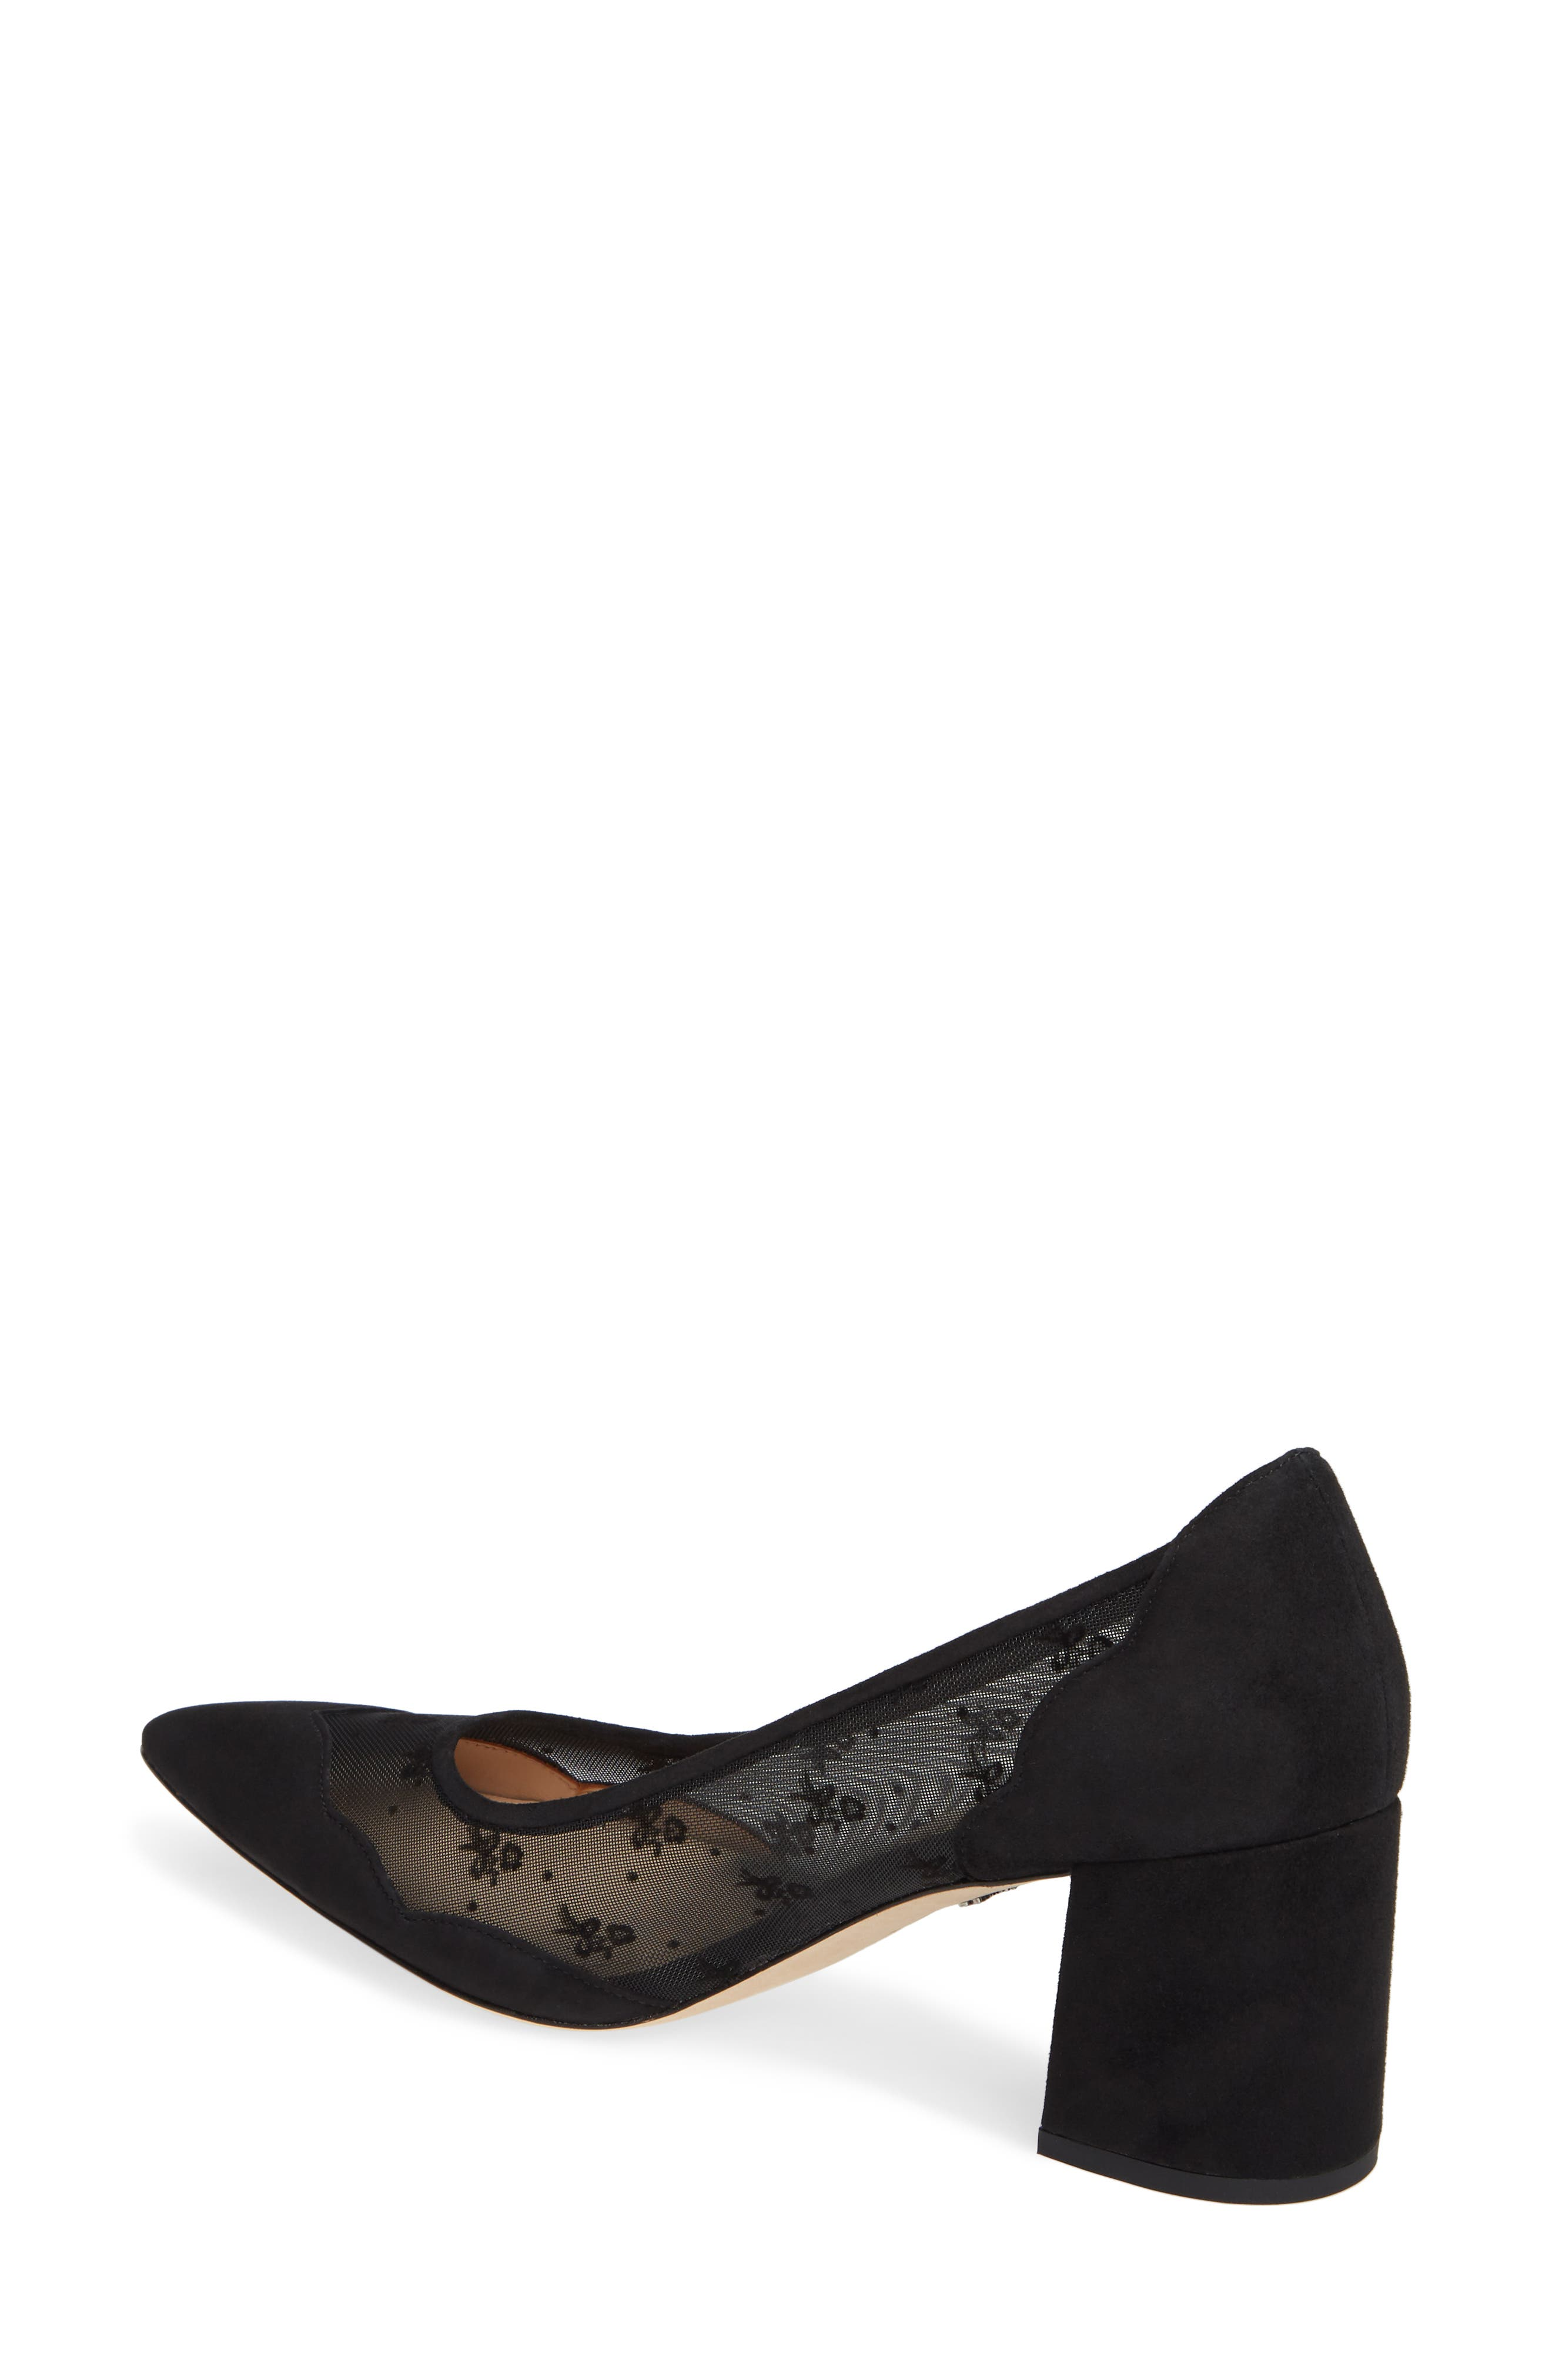 COACH, Whitley Scallop Pointy Toe Pump, Alternate thumbnail 2, color, BLACK SUEDE